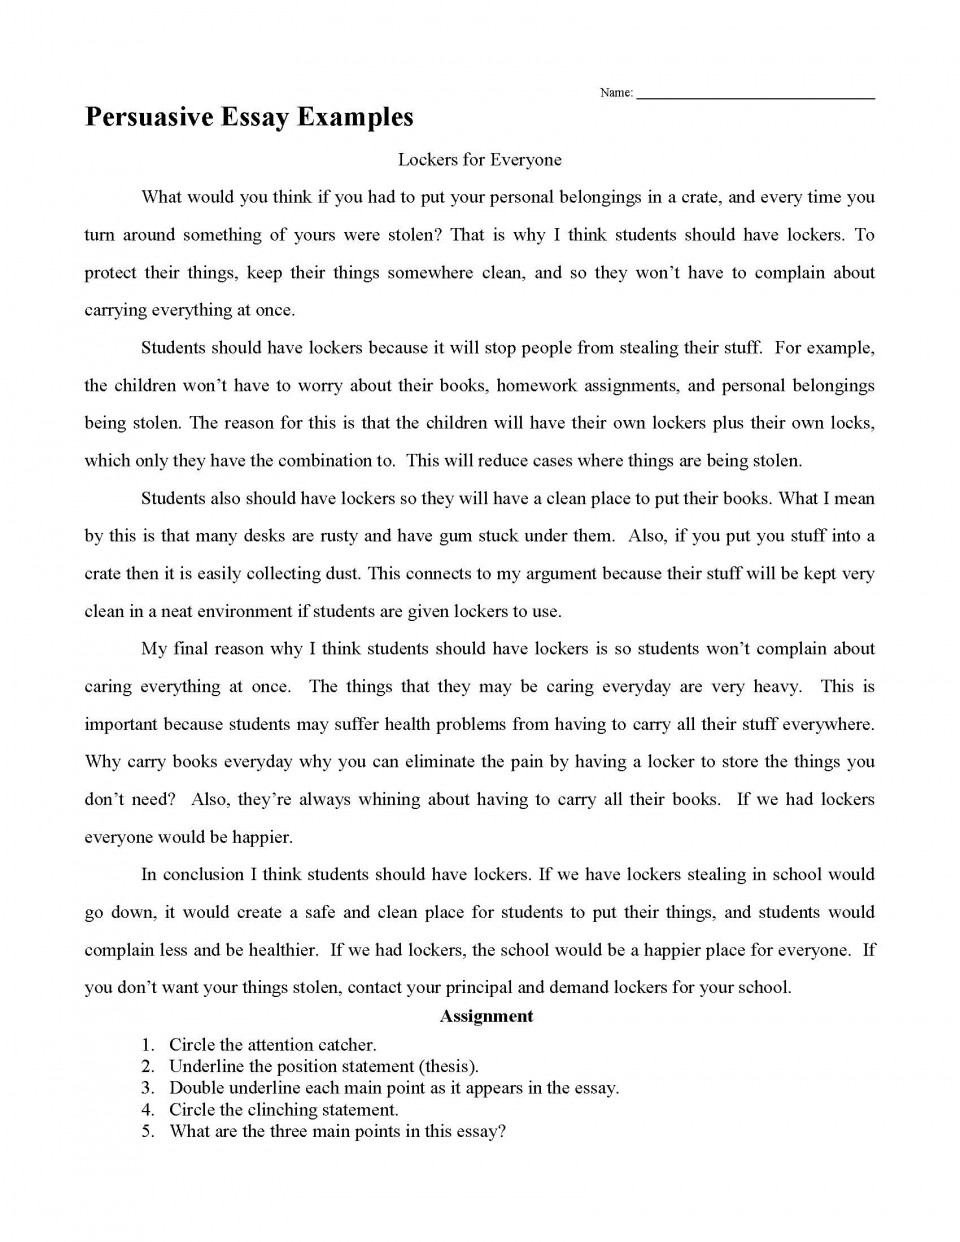 014 Research Paper Persuasive Essay Examples Introduction Of Awesome A Paragraph For Apa 960